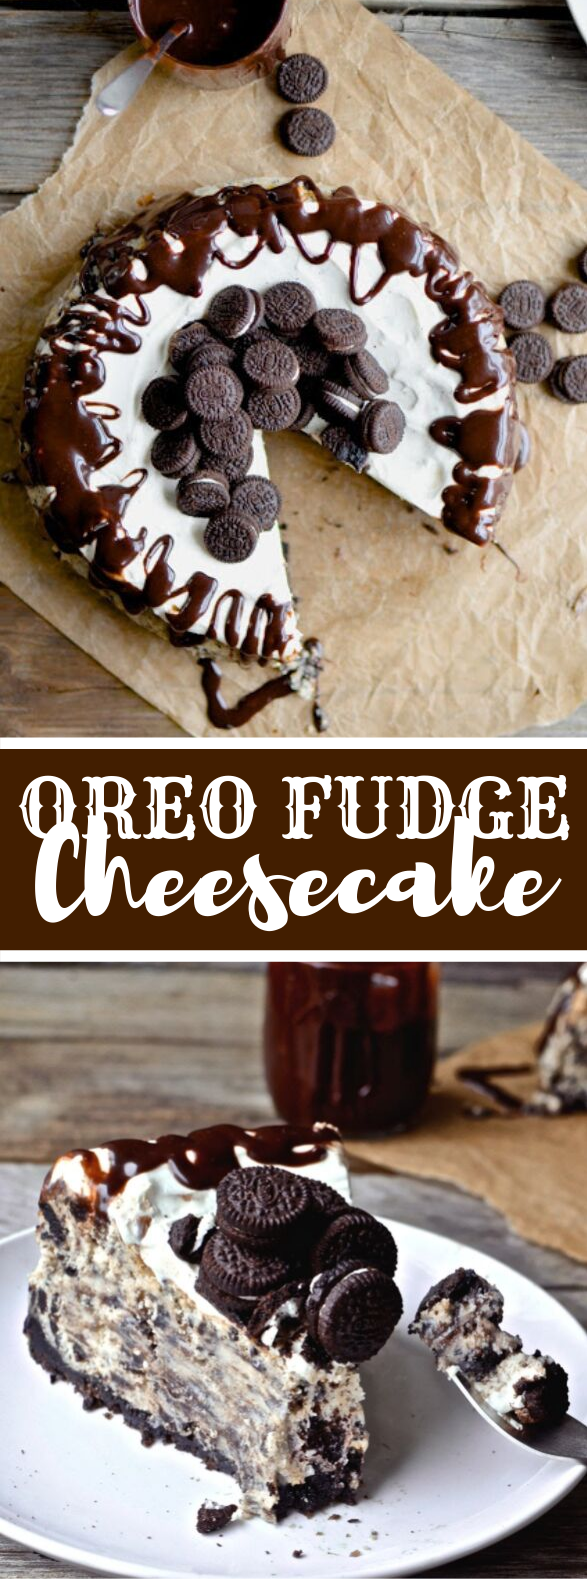 Oreo Fudge Cheesecake #desserts #cake